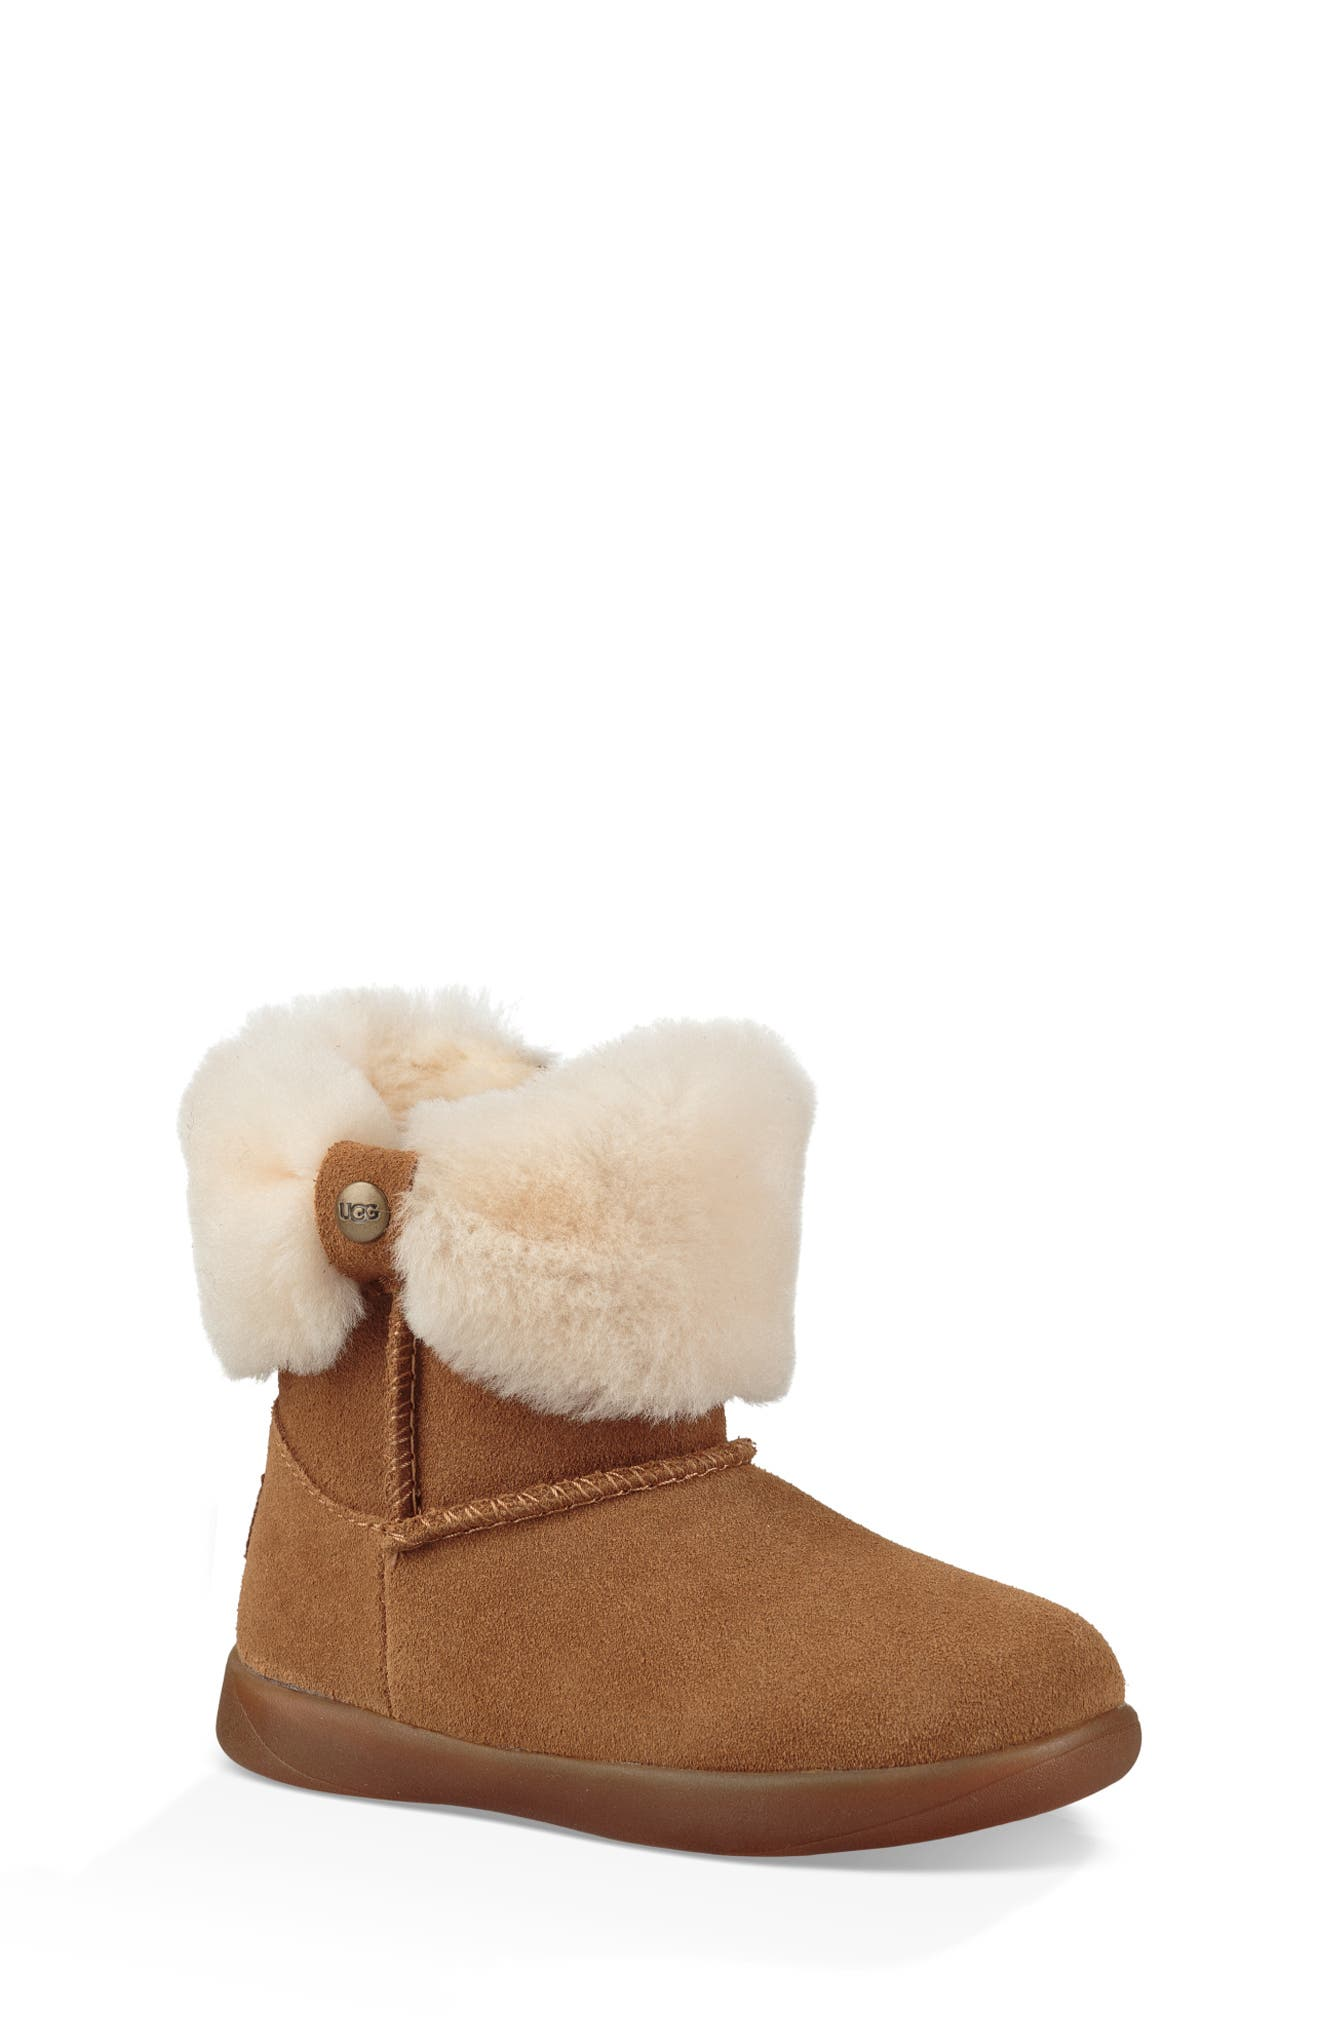 UGG<SUP>®</SUP>, Ramona Classic Short Boot, Main thumbnail 1, color, CHESTNUT